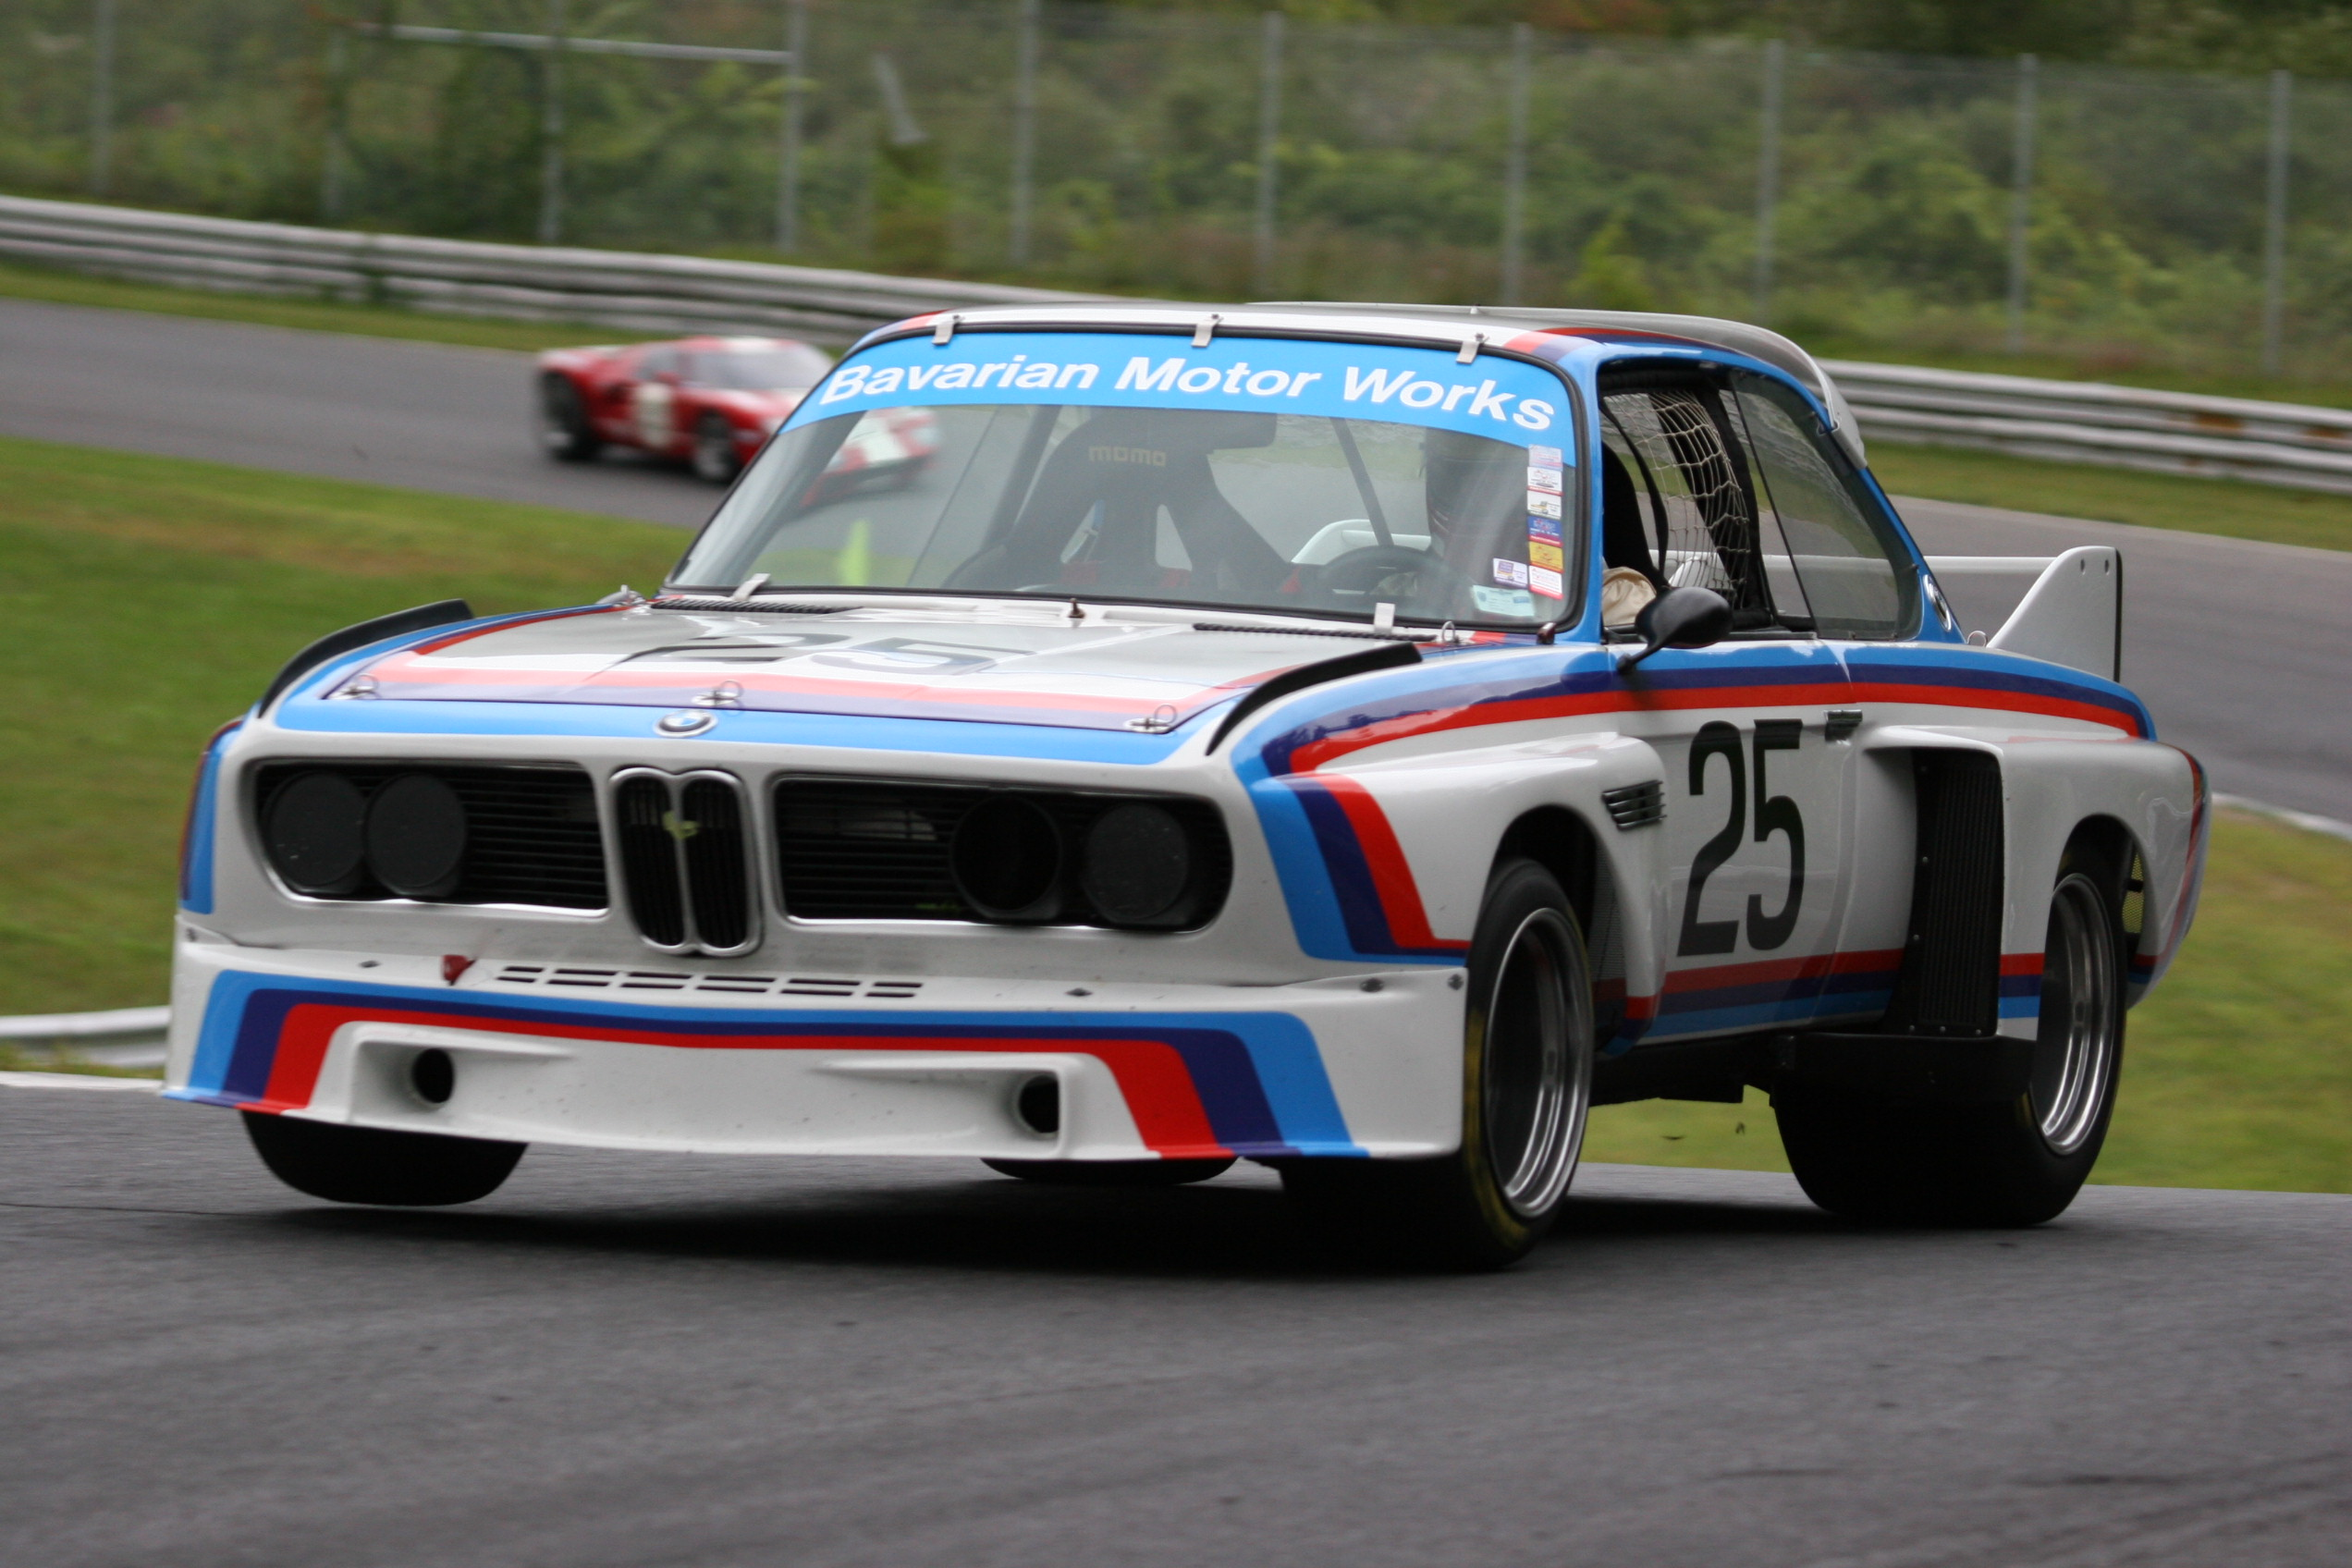 Bmw North America Chairman To Drive One Of Three Bmw Owned Cars In Rolex Monterey Motorsports